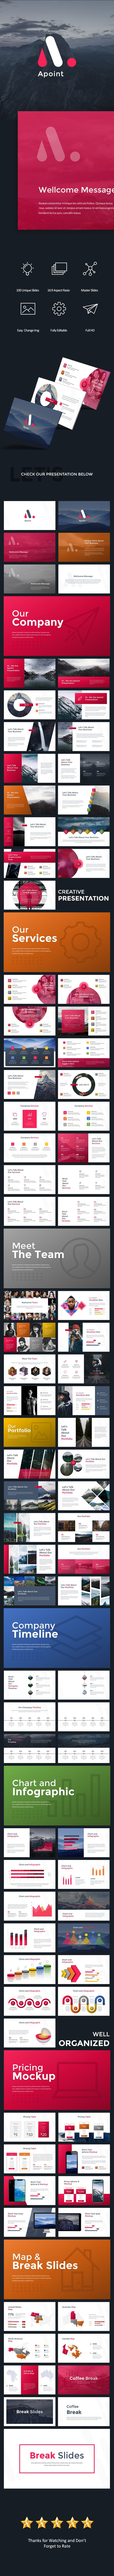 Apoint Creative Powerpoint